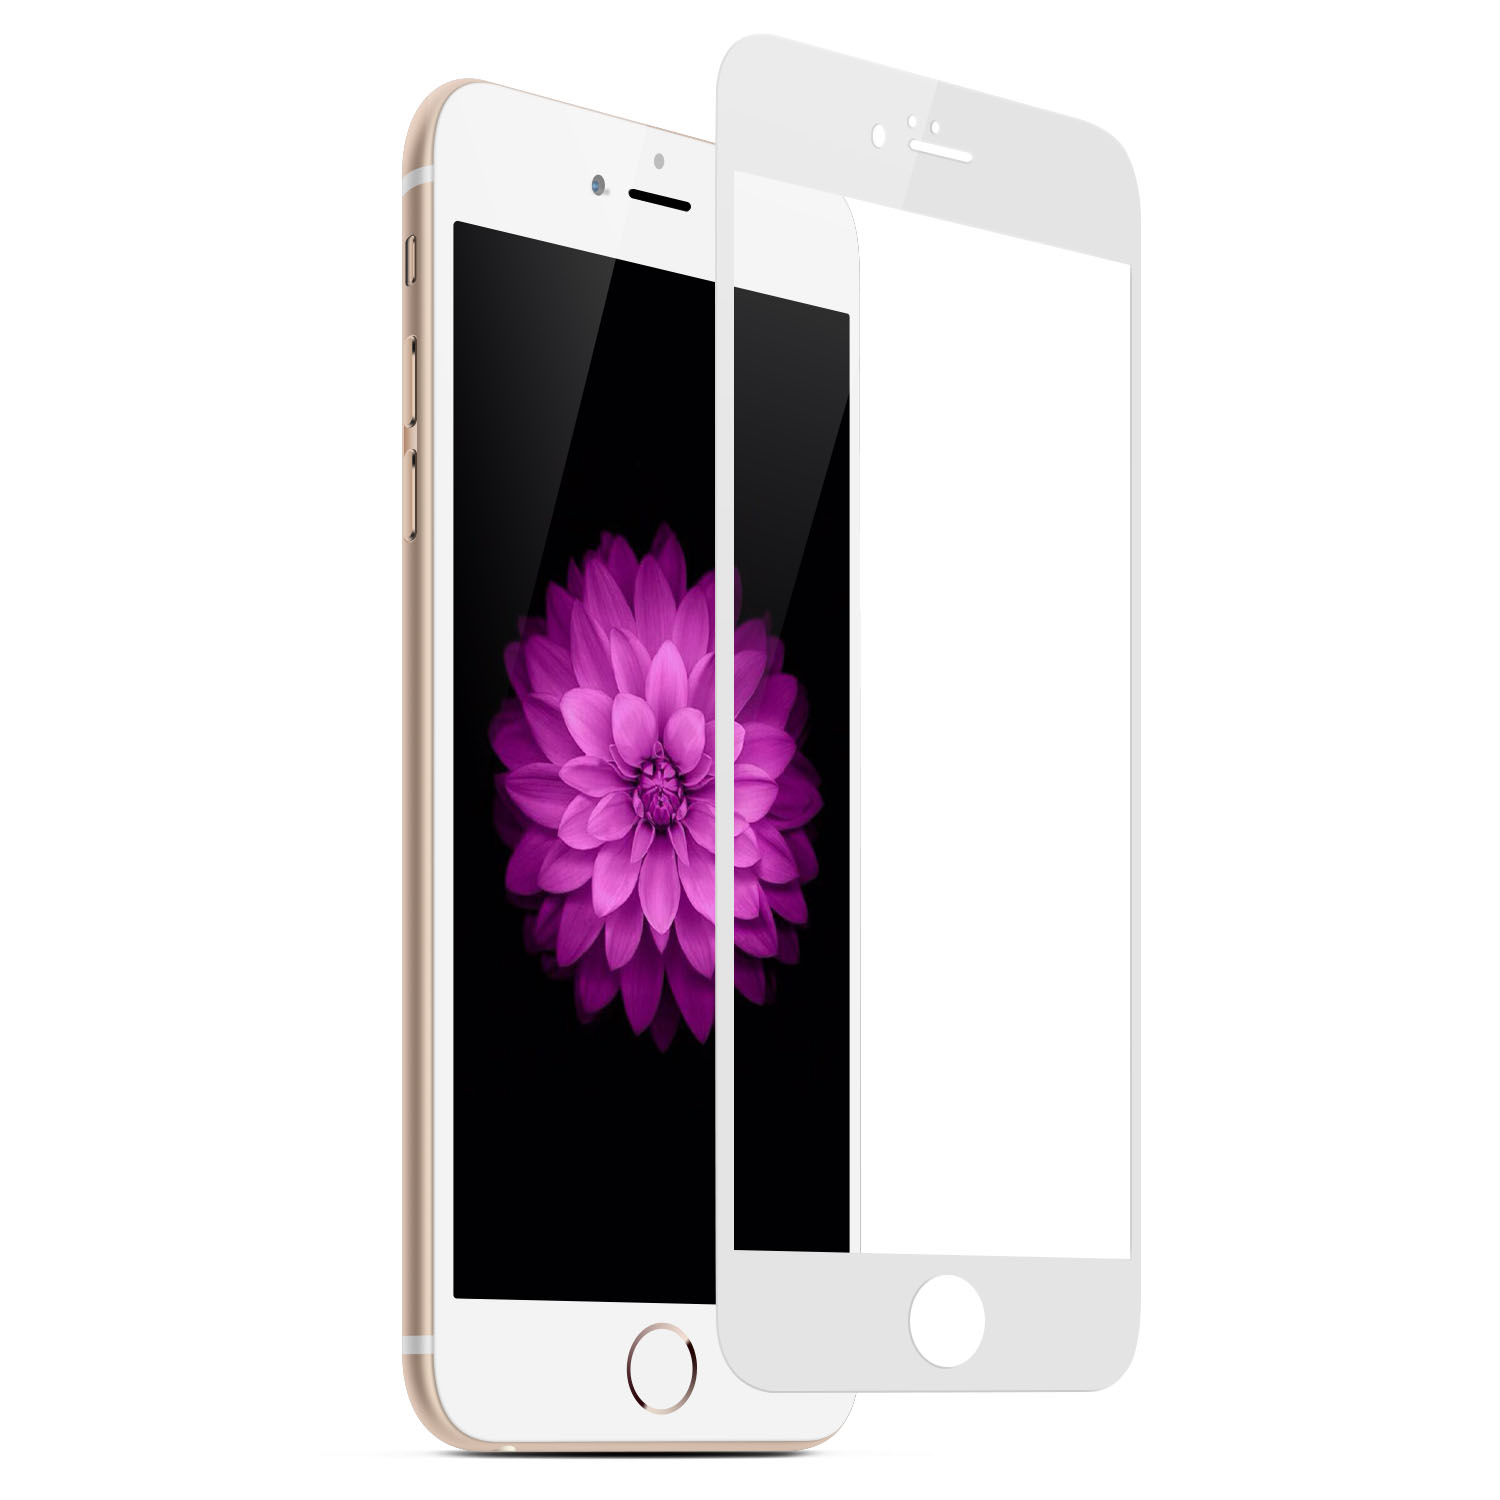 Tempered-Glass Screen Protector for iPhone 6 White Gold 4.7 inches firefly SP-G20 1